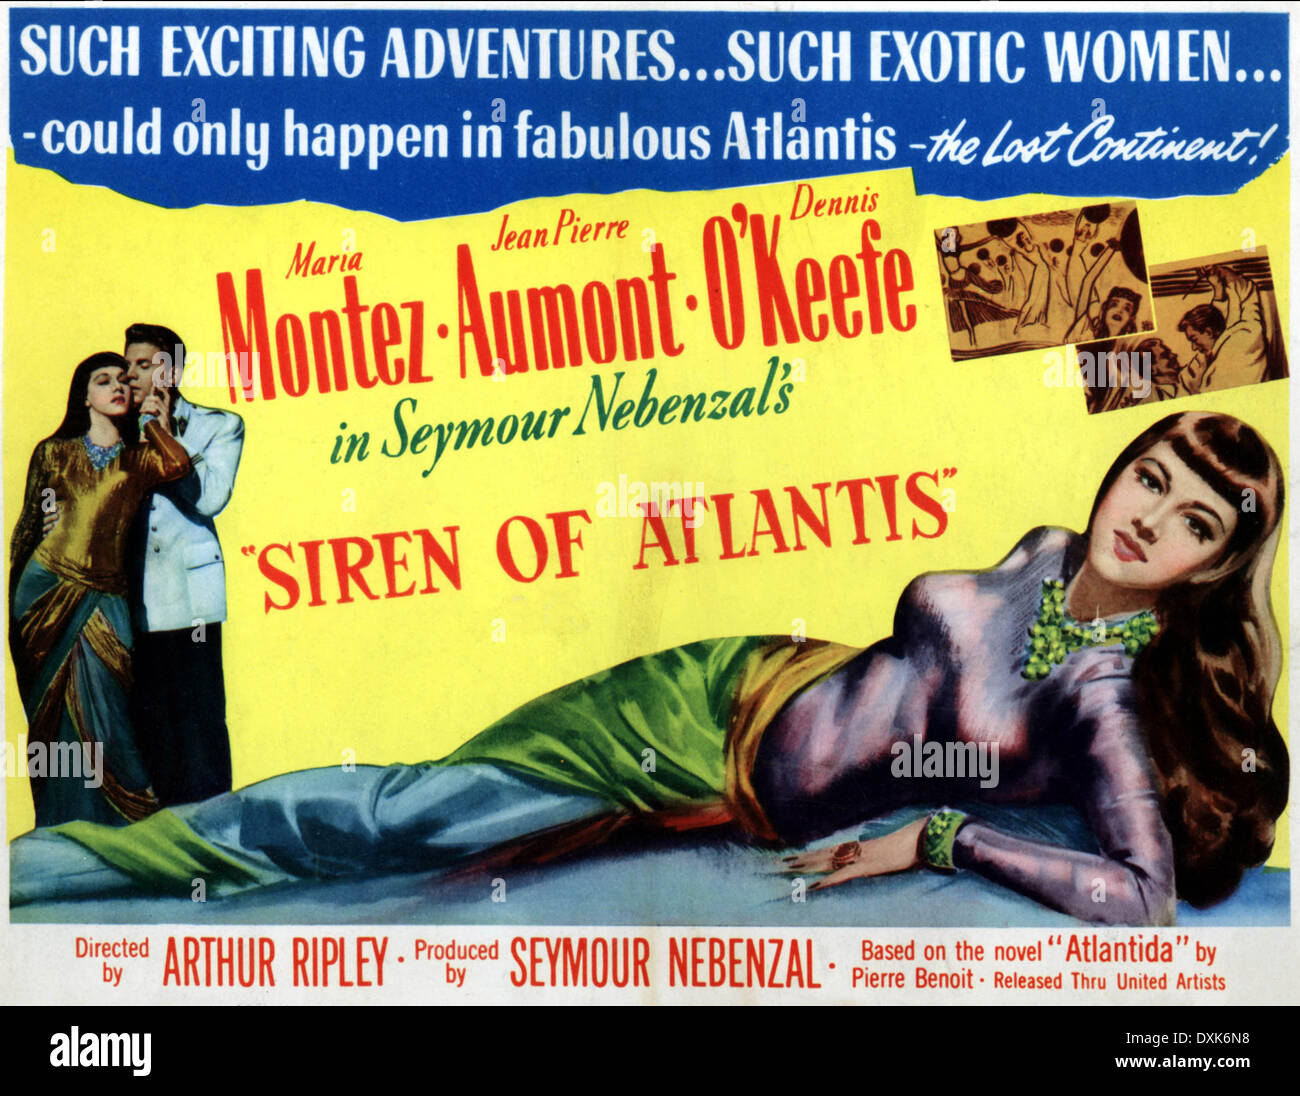 SIREN OF ATLANTIS - Stock Image